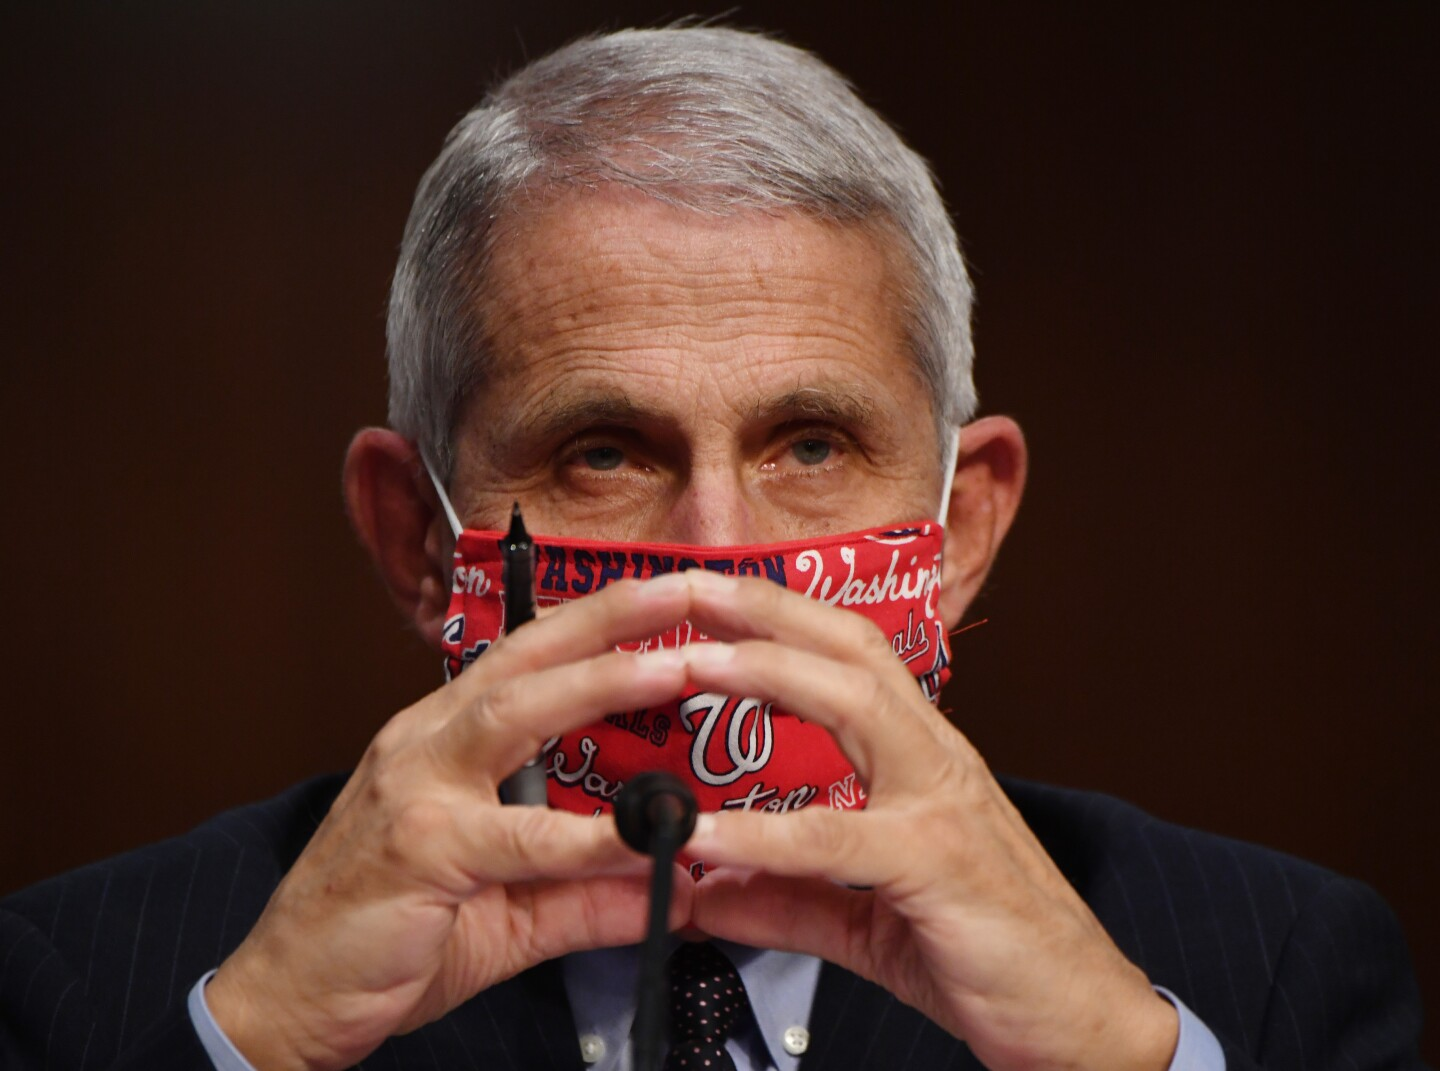 """Dr. Anthony Fauci, director of the National Institute for Allergy and Infectious Diseases, prepares to testify at a hearing of the Senate Health, Education, Labor and Pensions Committee on June 30, 2020 in Washington, DC. He is wearing a red face mask with the word """"Washington"""" on it."""